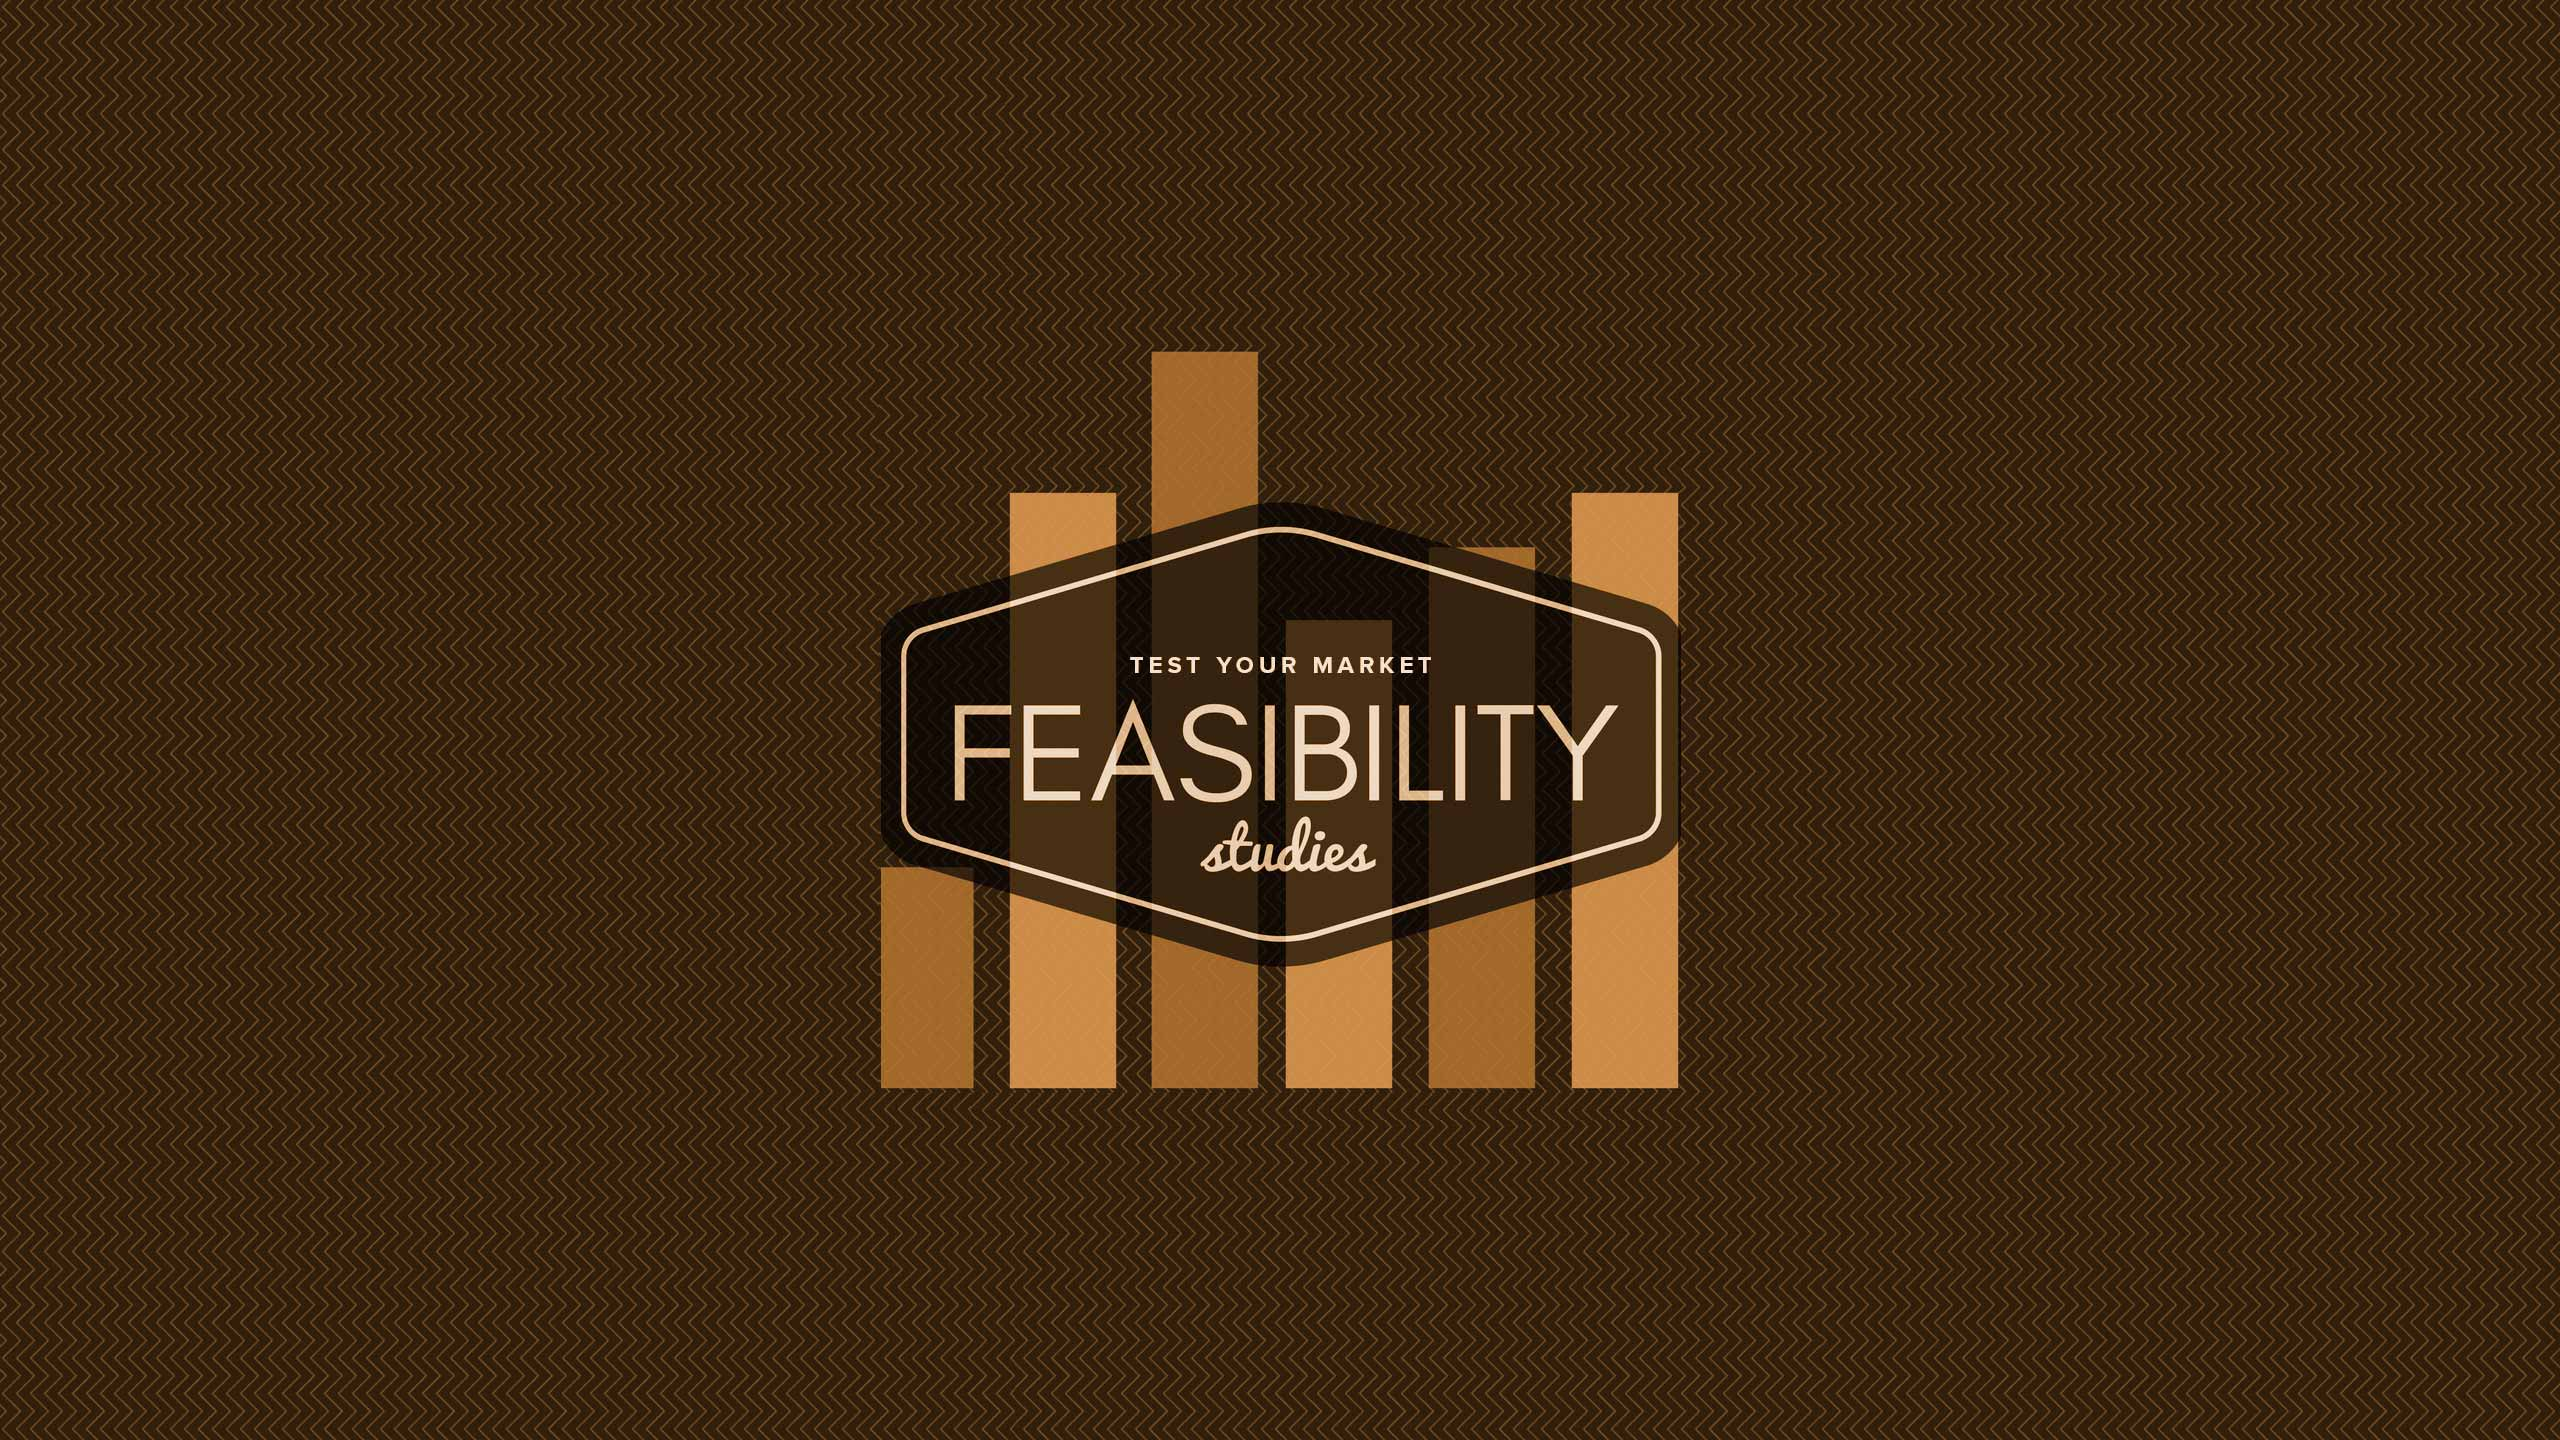 08-feasibilty-studies